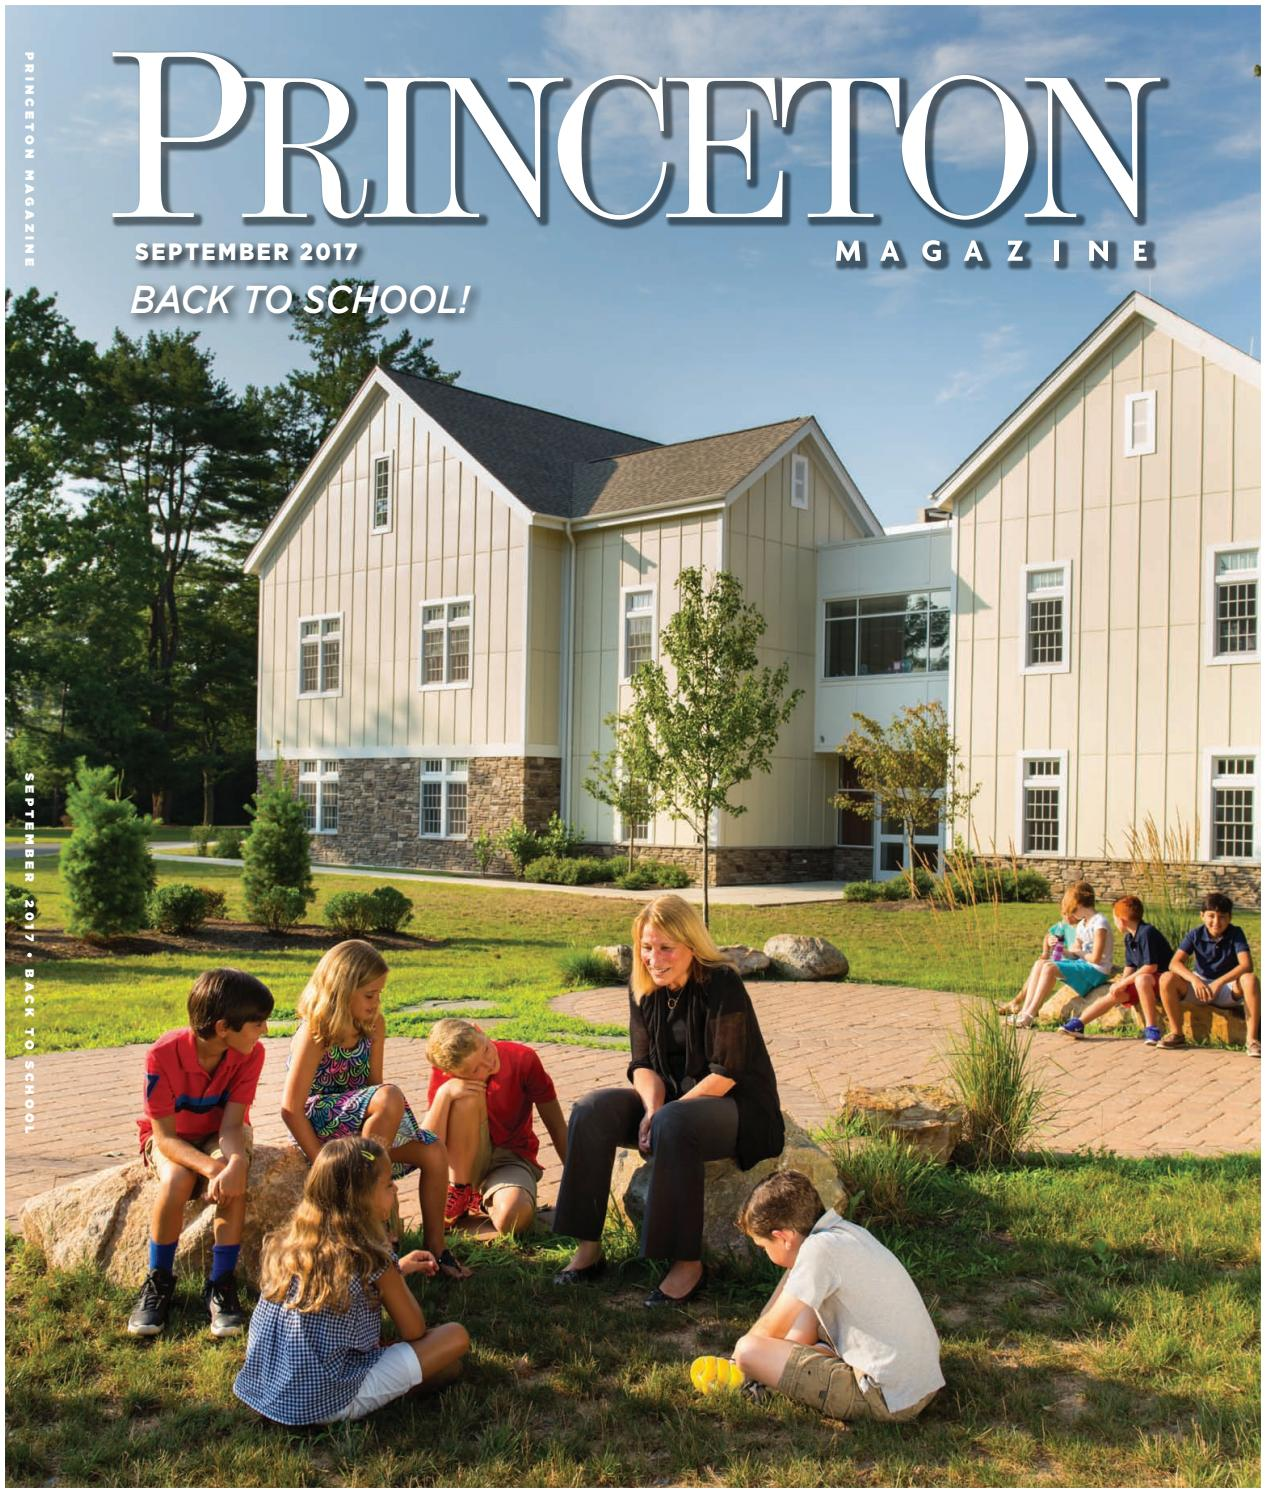 Princeton Magazine, September 2017 by Witherspoon Media